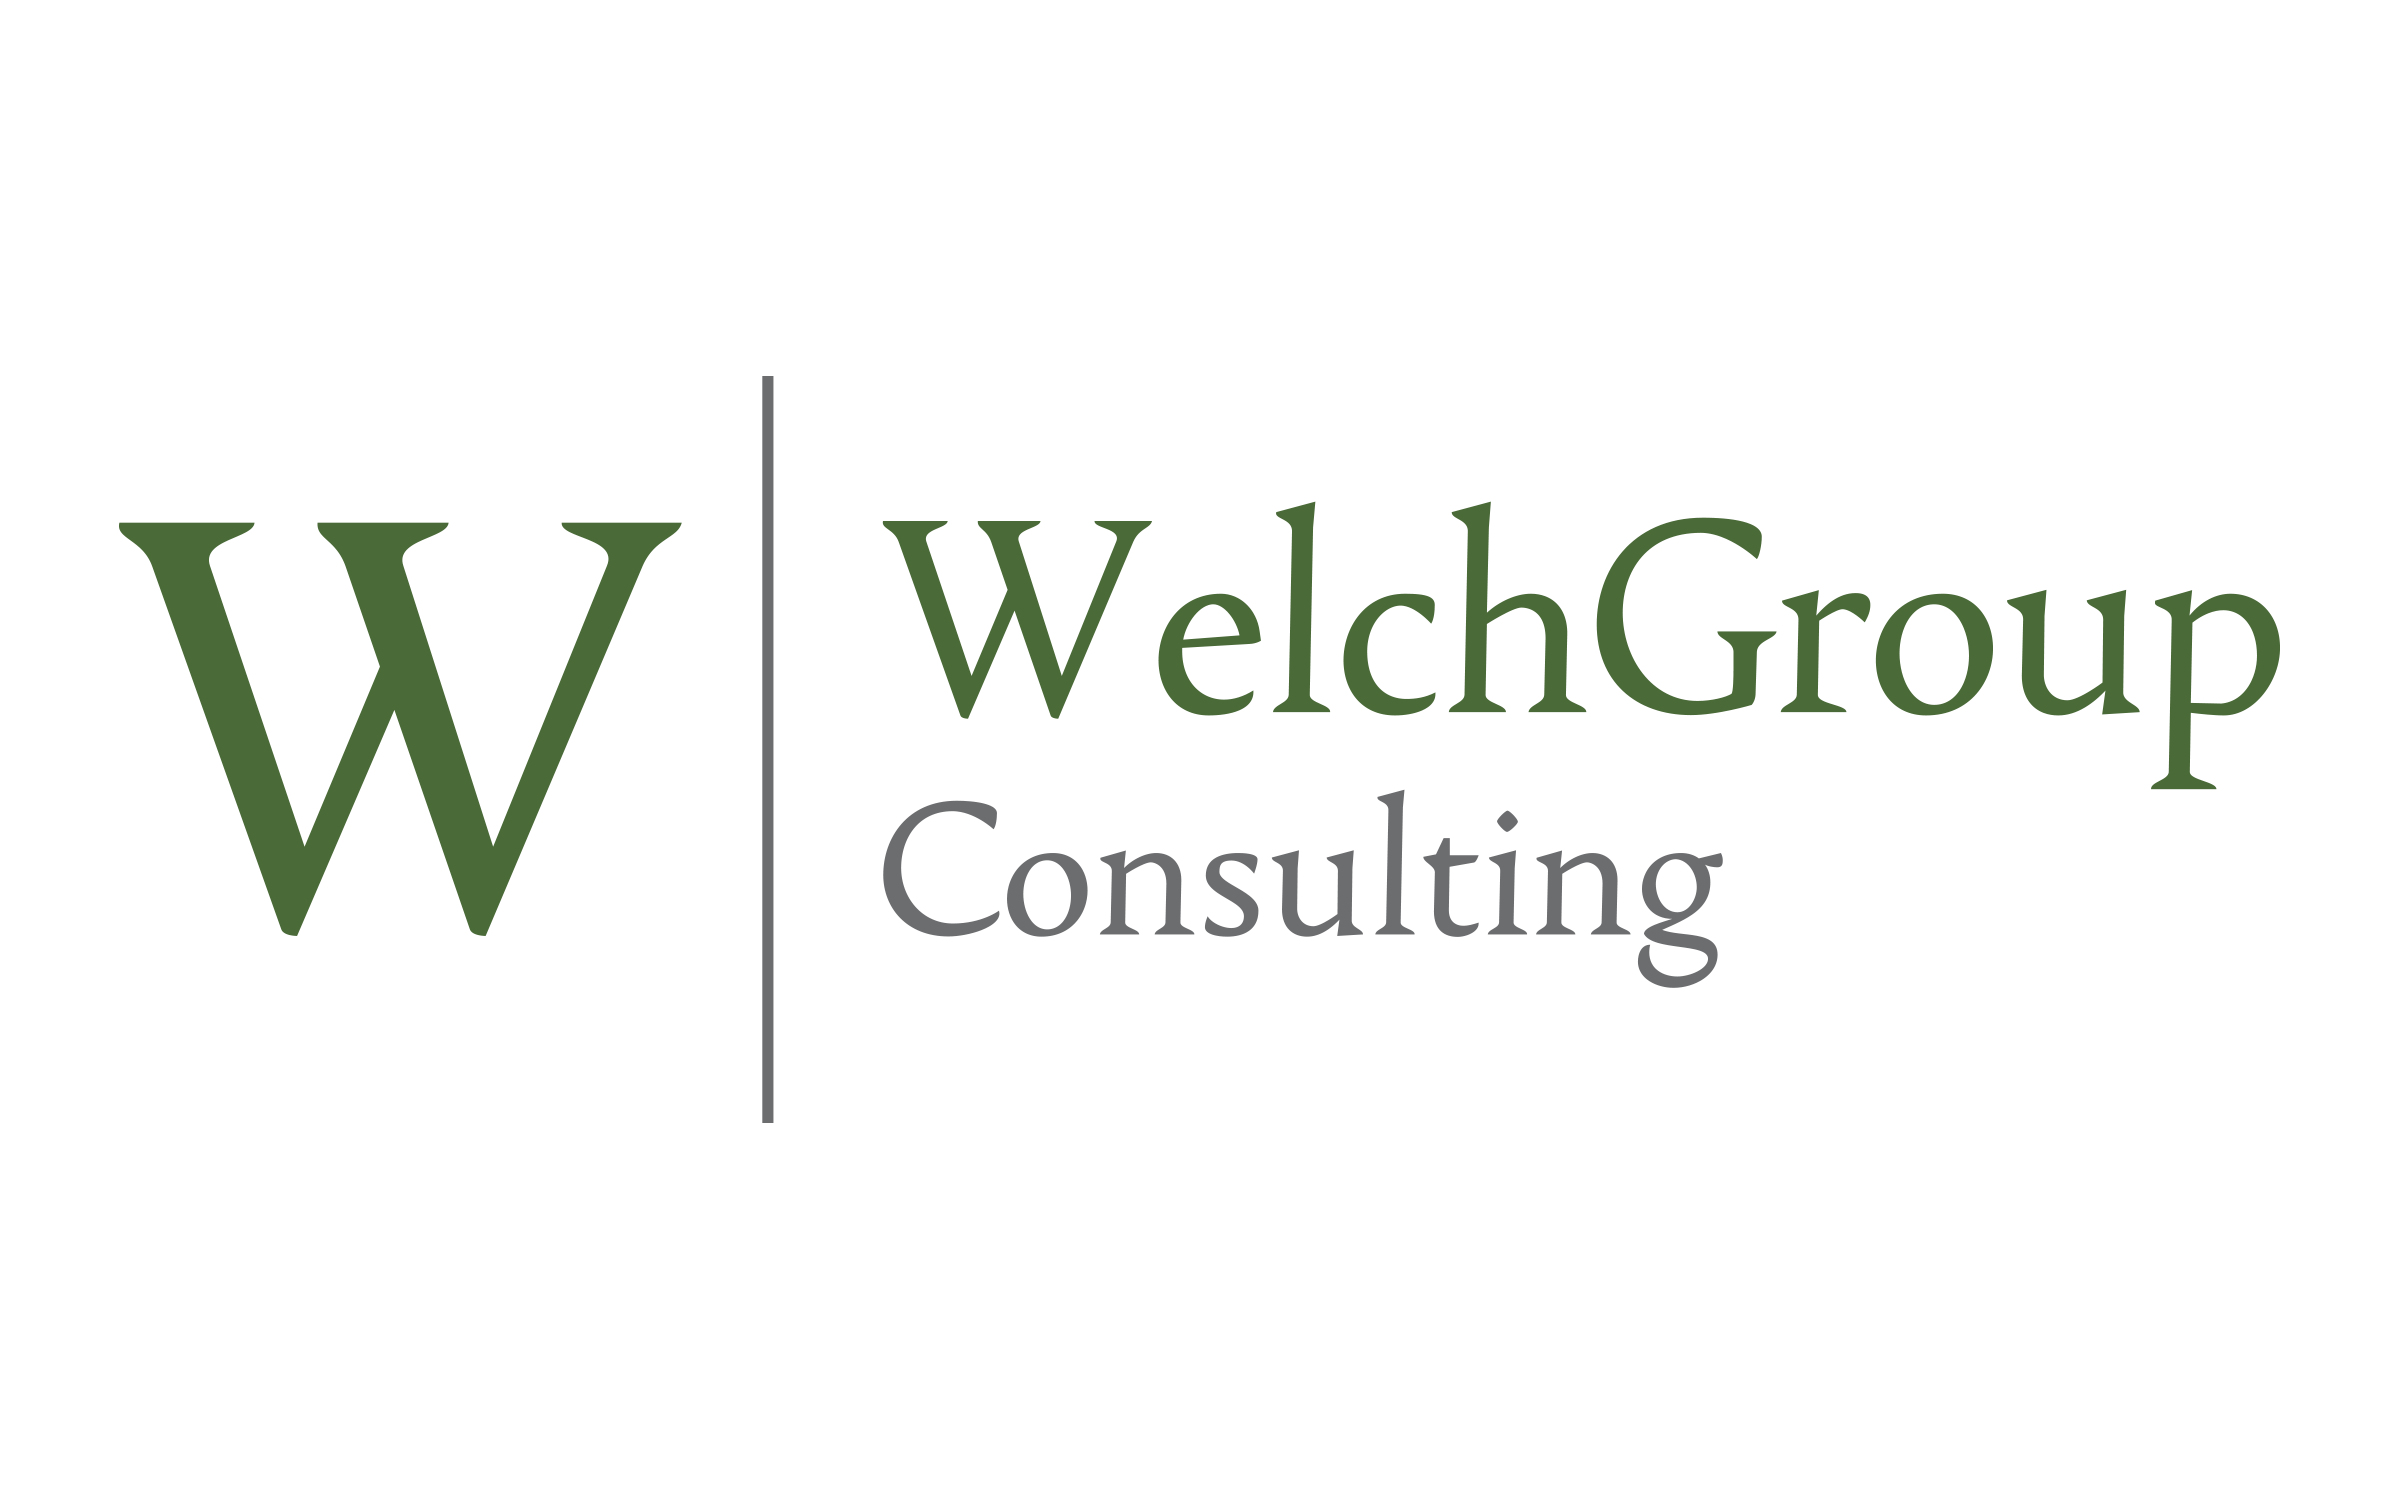 WelchGroup Consulting